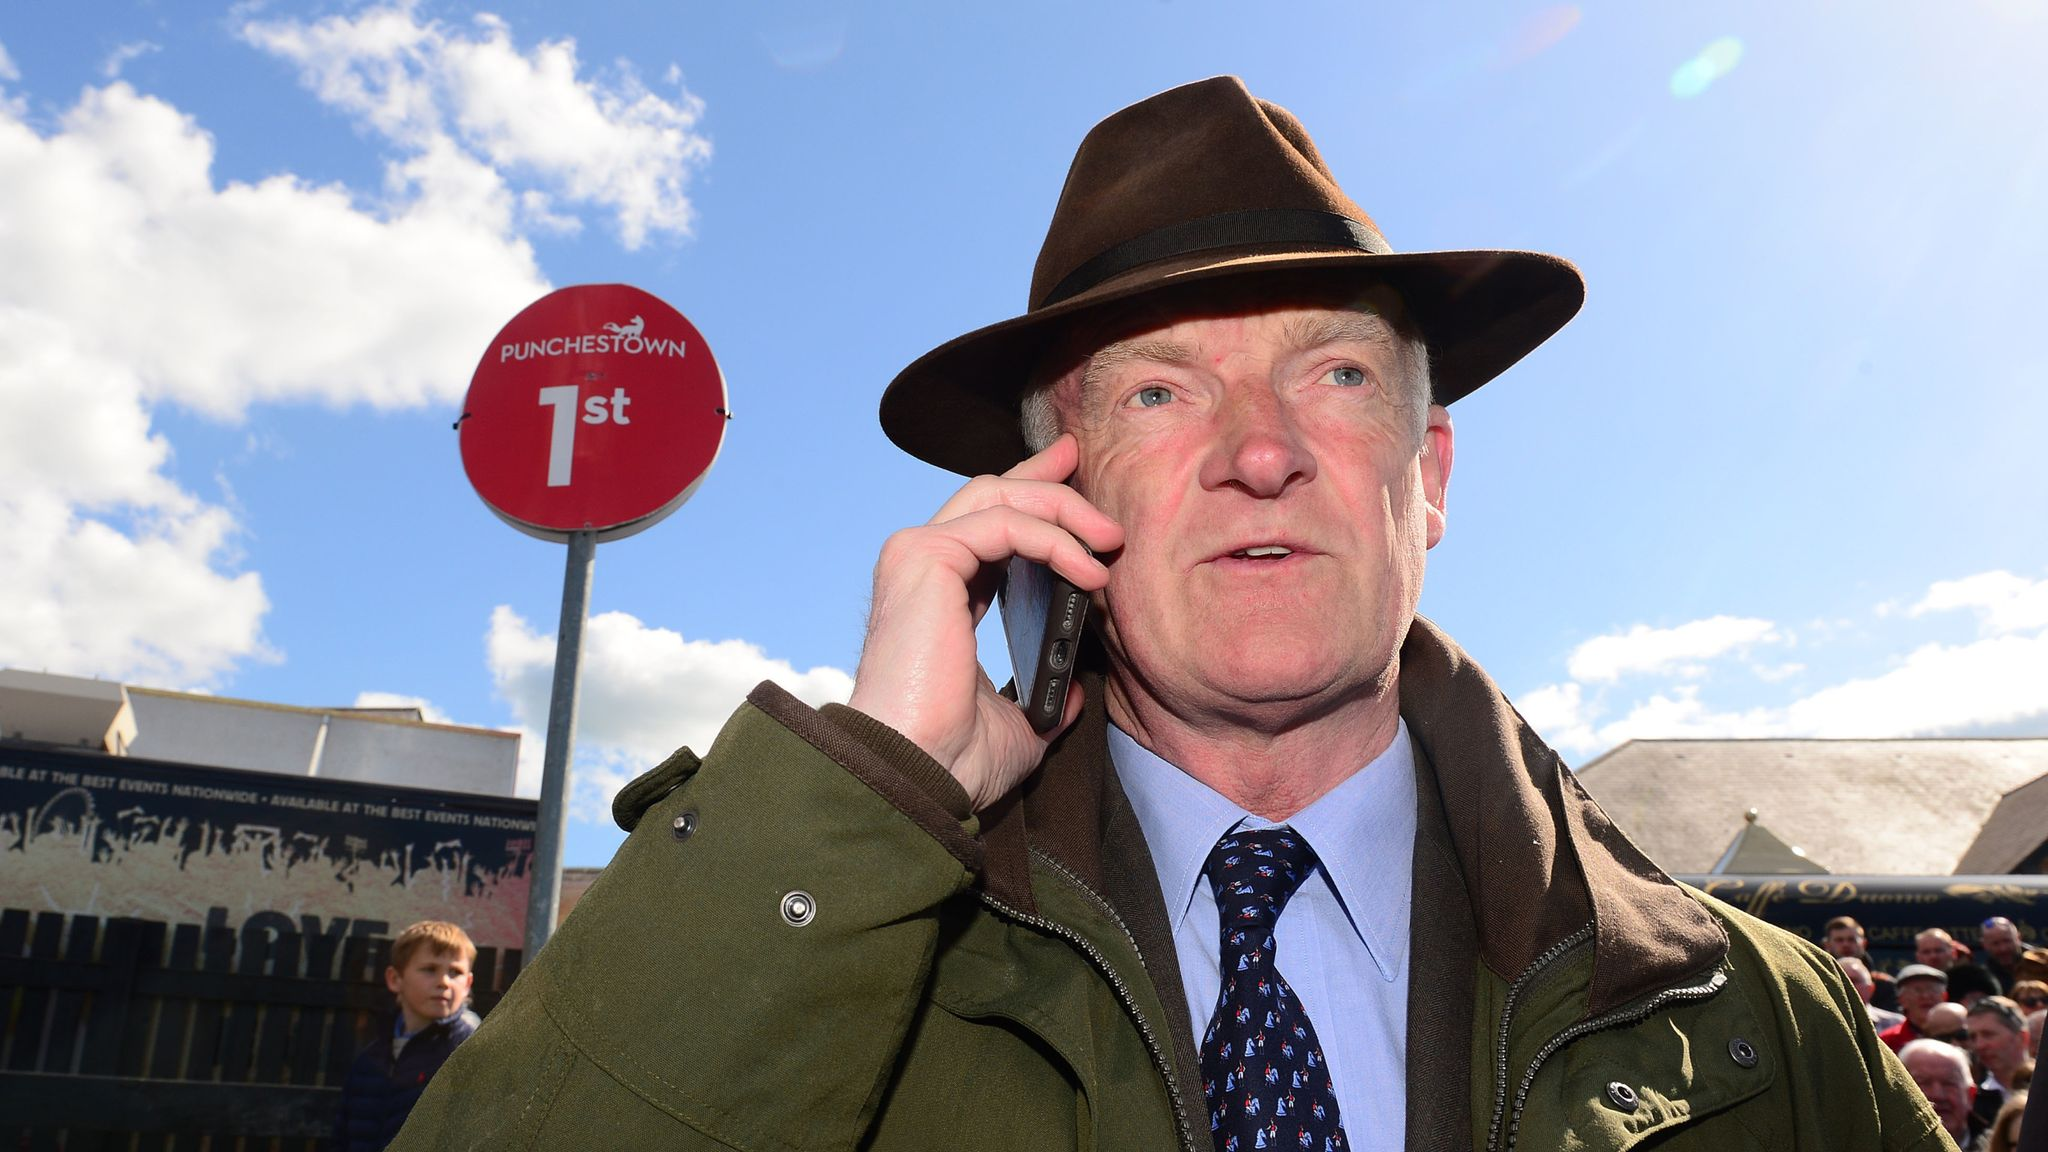 Big Sunday double for Willie Mullins in Ireland